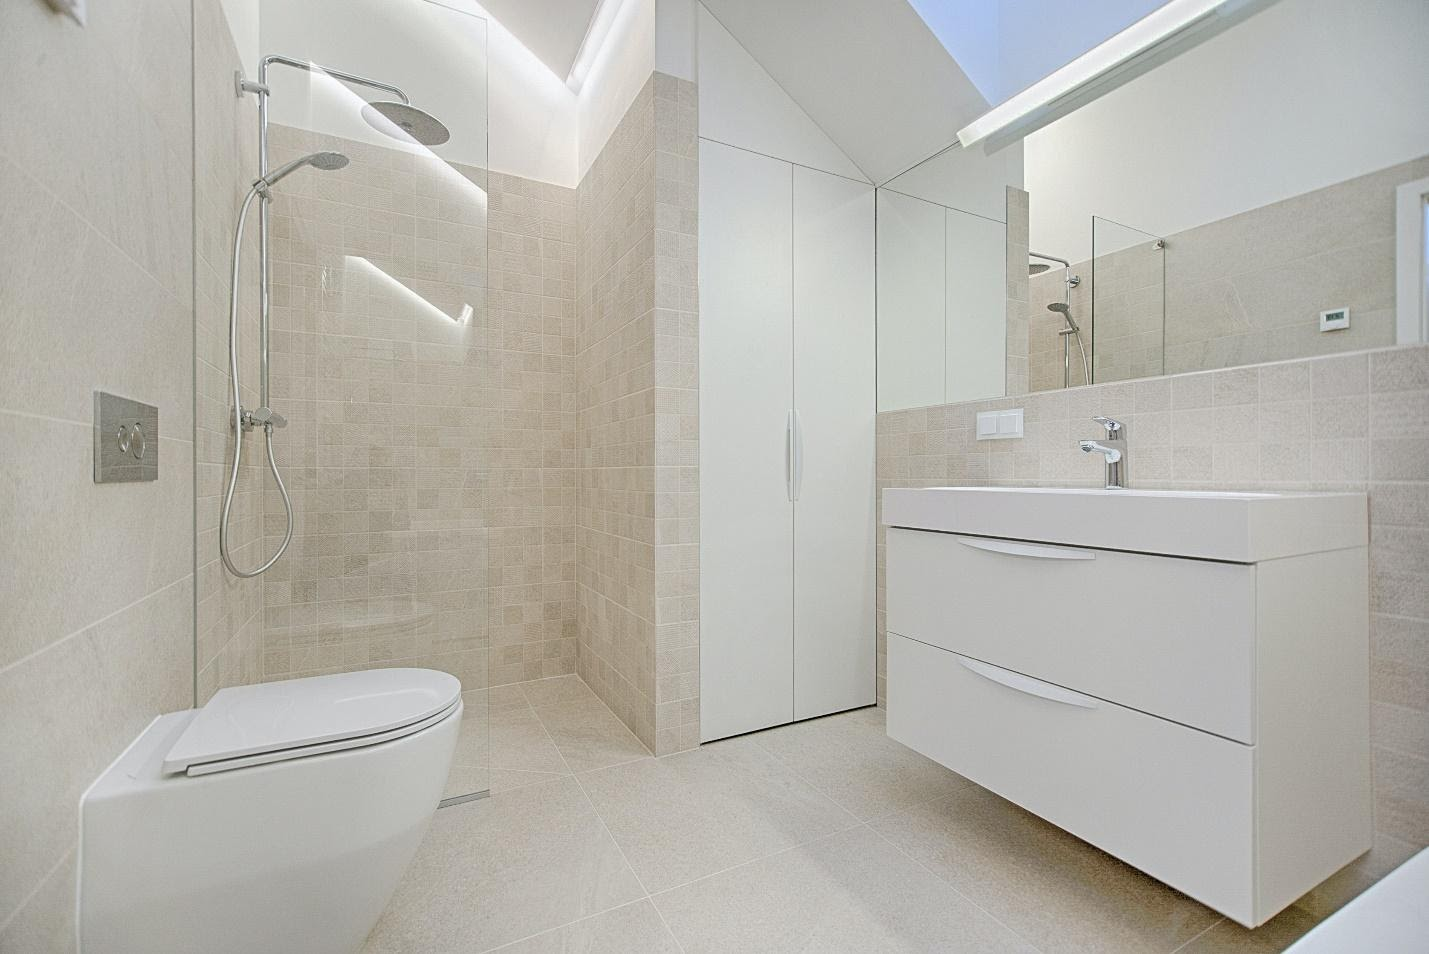 A cream color bathroom